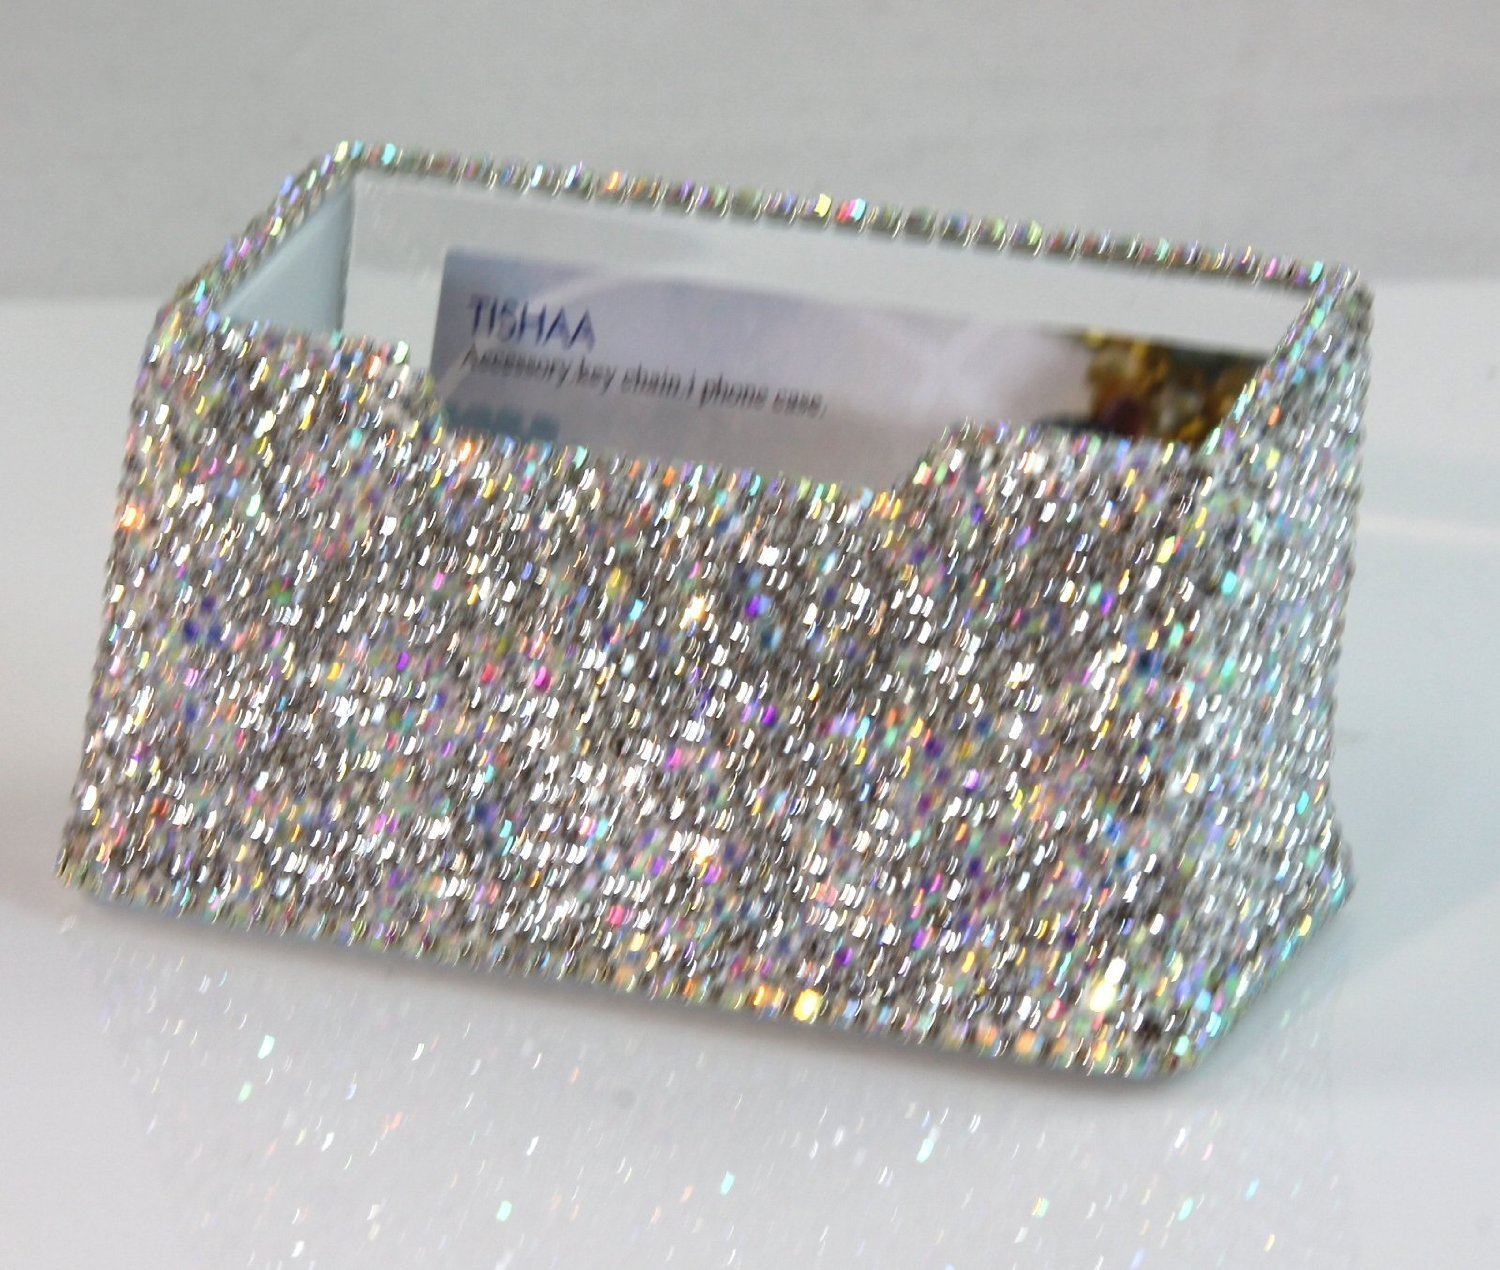 TISHAA Crystal Spark Bling Bling Decorative Business Card Holder (White Full) by TISHAA (Image #1)